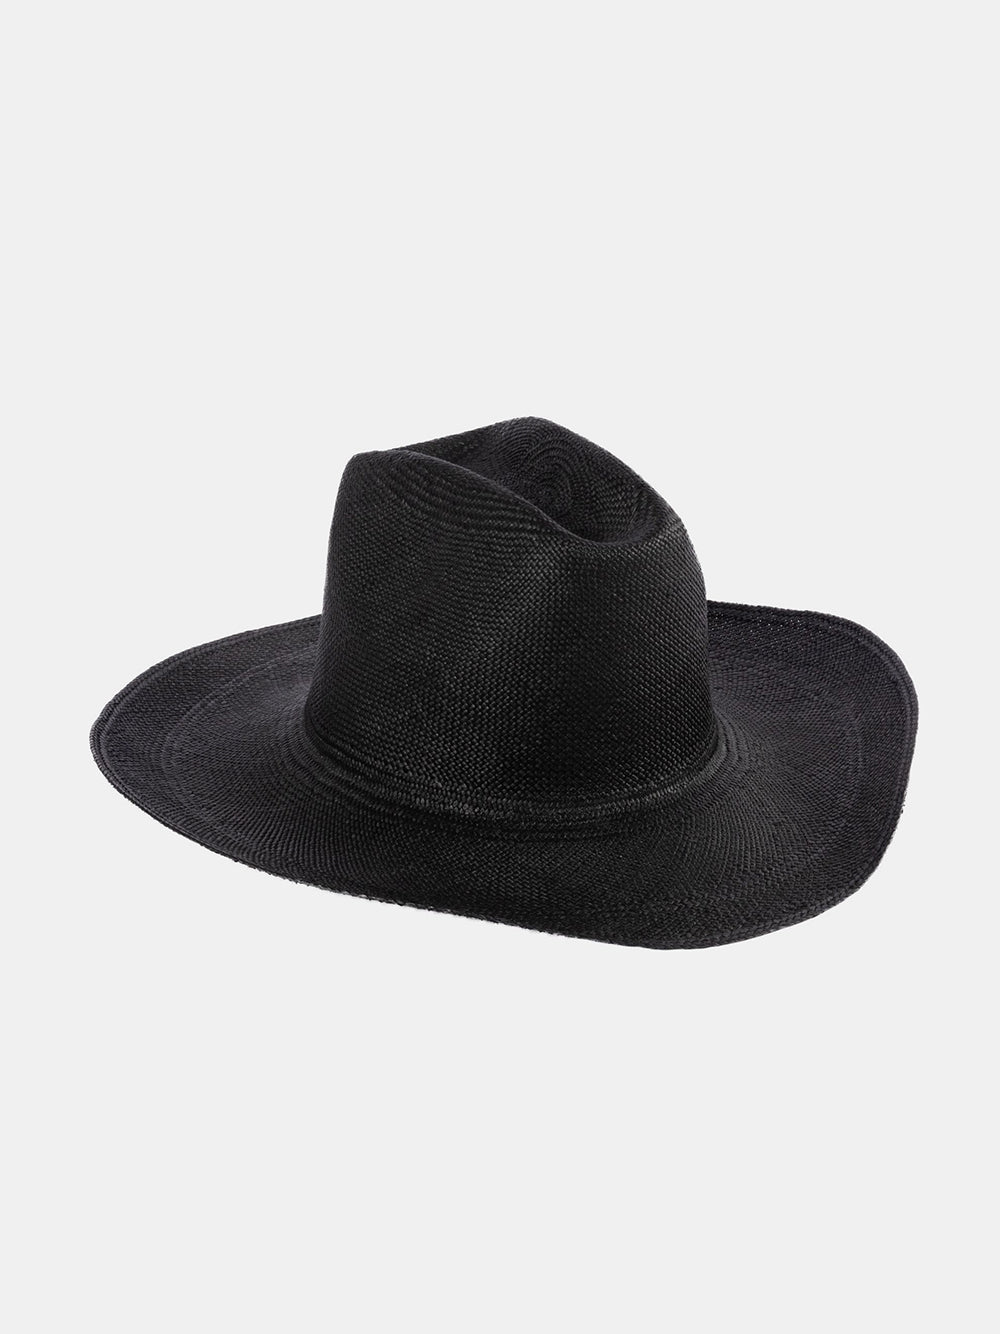 clyde cowboy hat in black